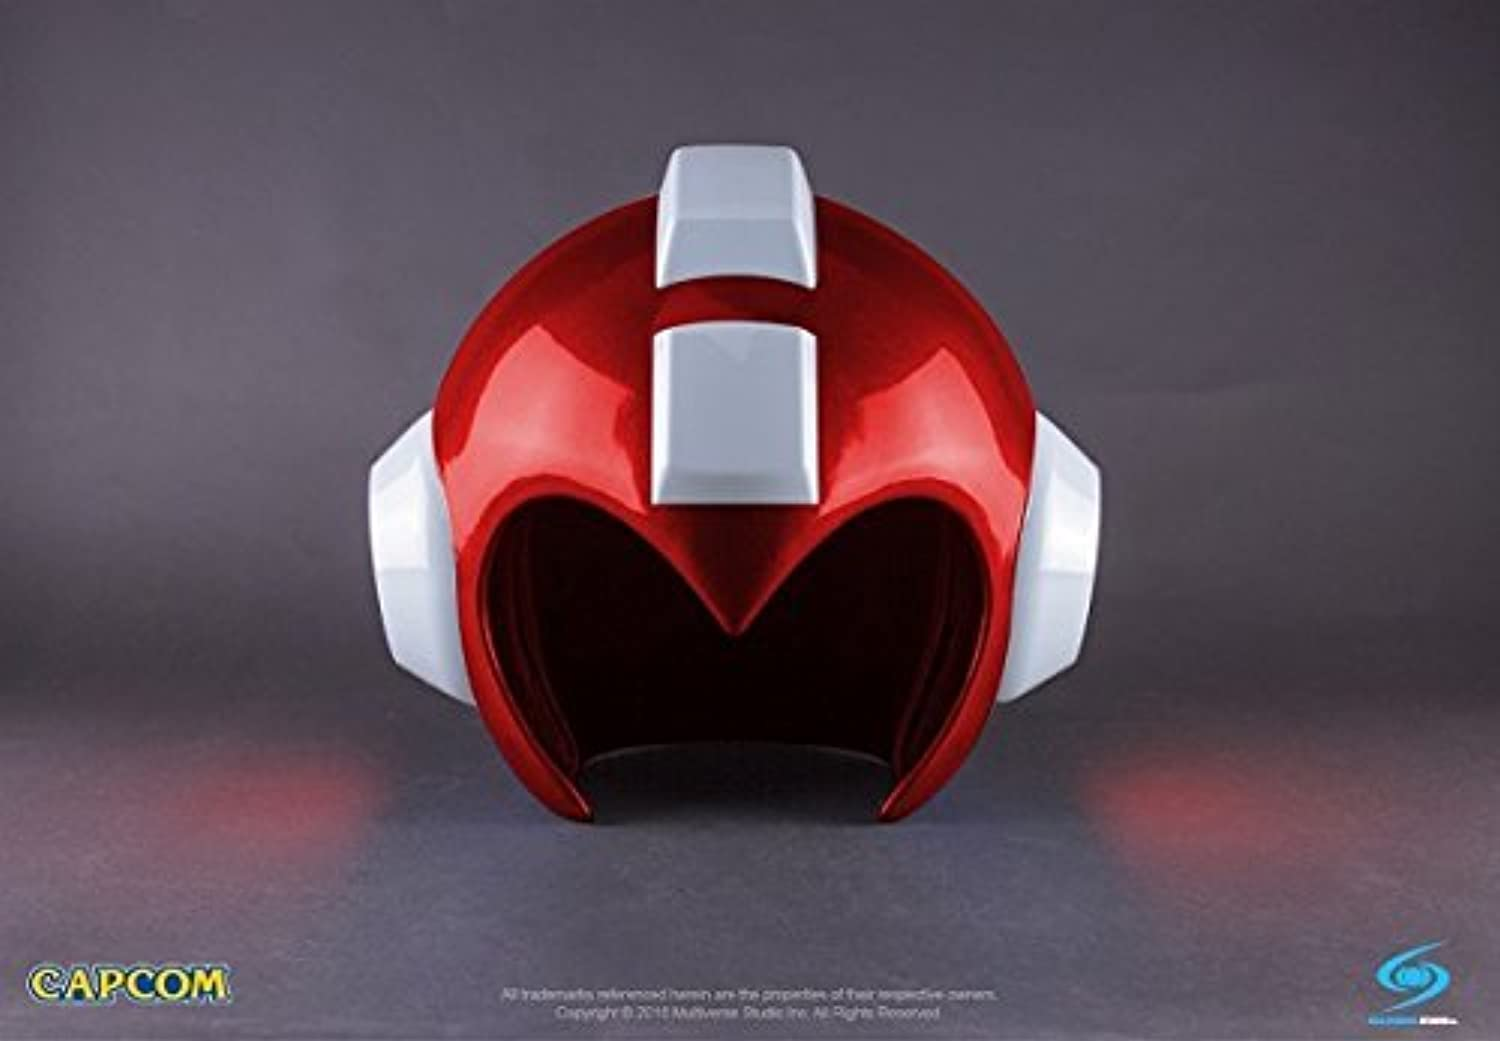 SDCC 2016 Exclusive Capcom Mega Man Wearable Helmet Replica (Rush Red Version) by Capcom